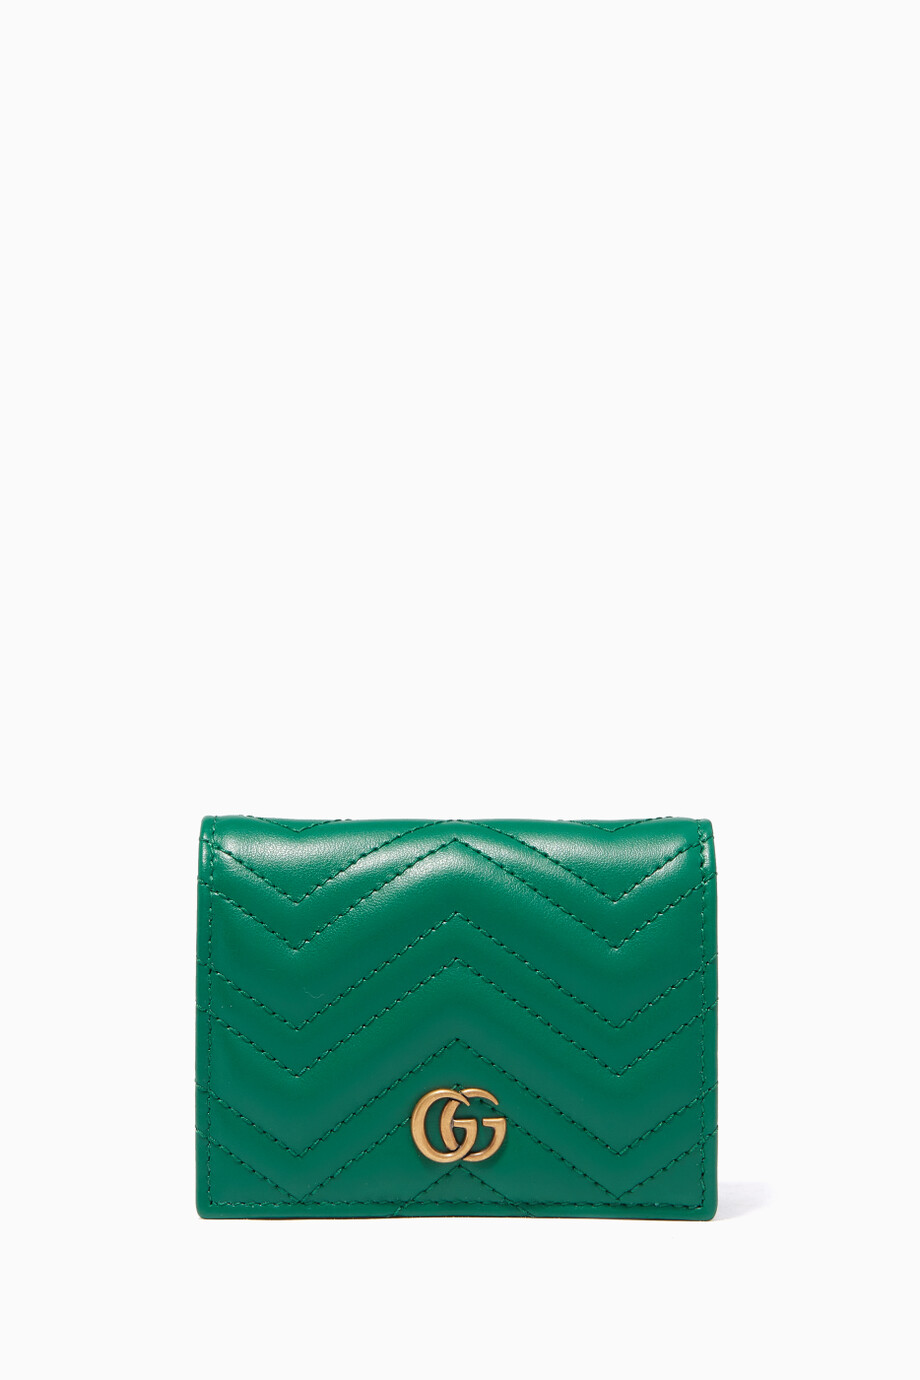 2af6056cdcd9 Shop Gucci Green Green GG Marmont Matelassé Wallet for Women ...